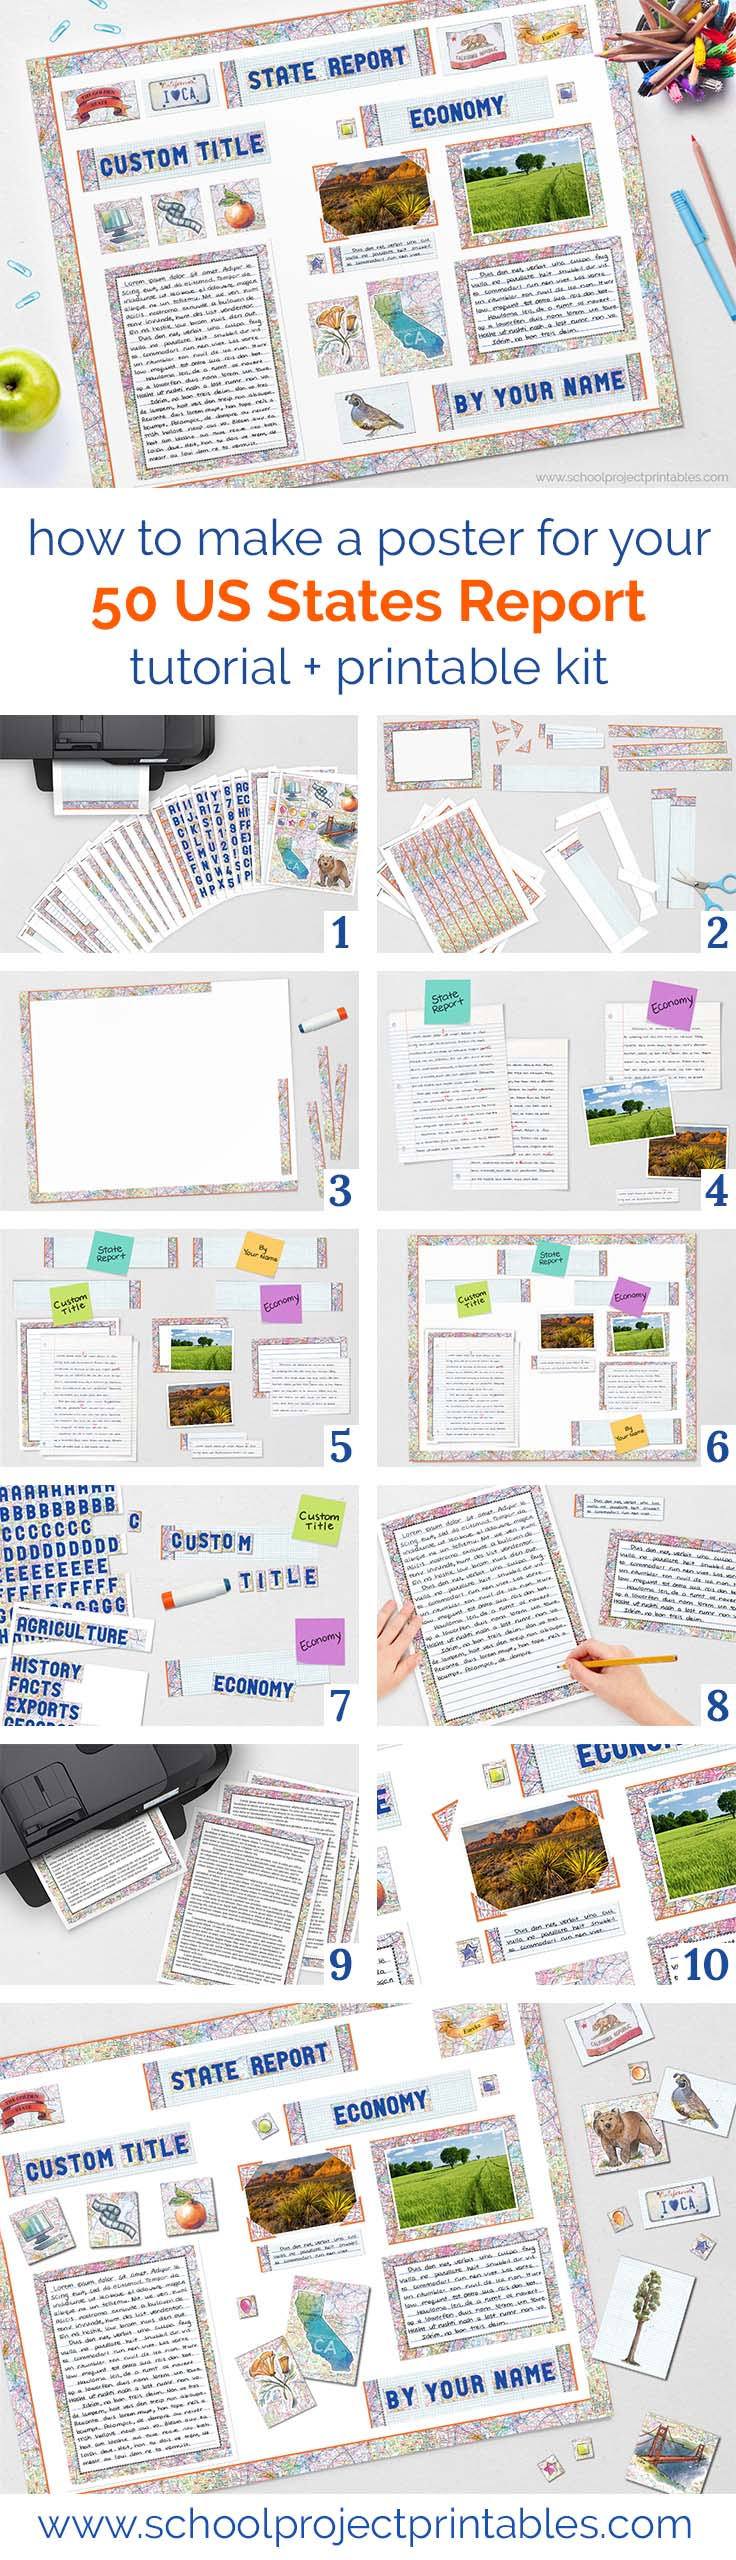 Step by step tutorial and printable kit for a school report on one of the 50 US States!